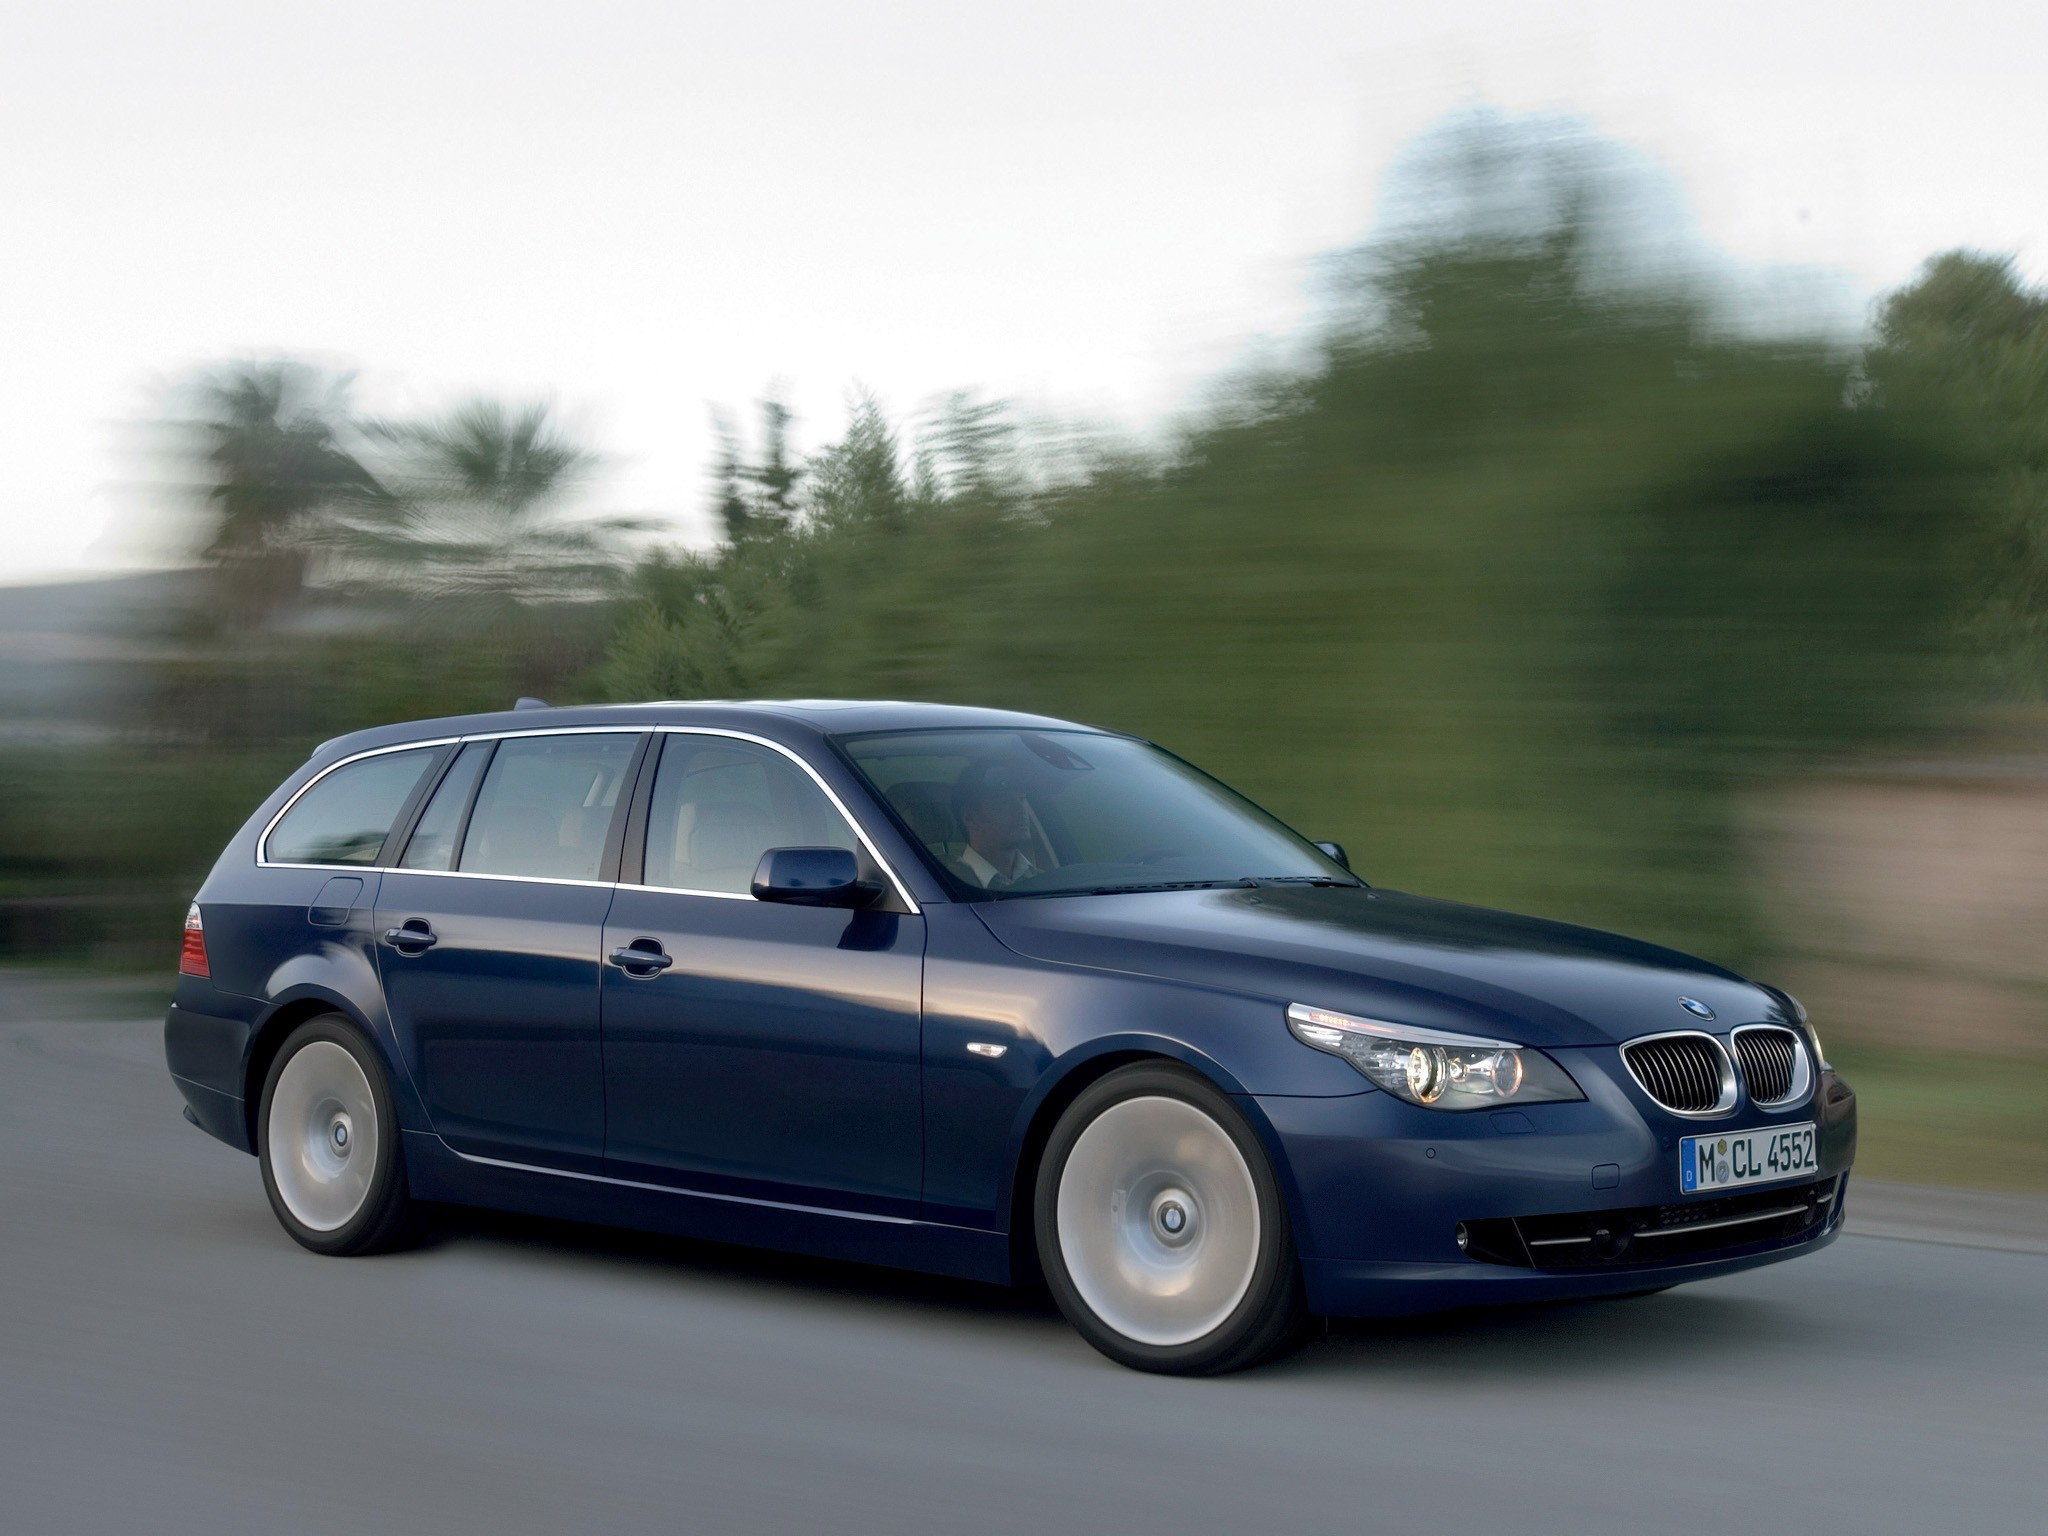 bmw 5 series touring e61 specs photos 2007 2008. Black Bedroom Furniture Sets. Home Design Ideas